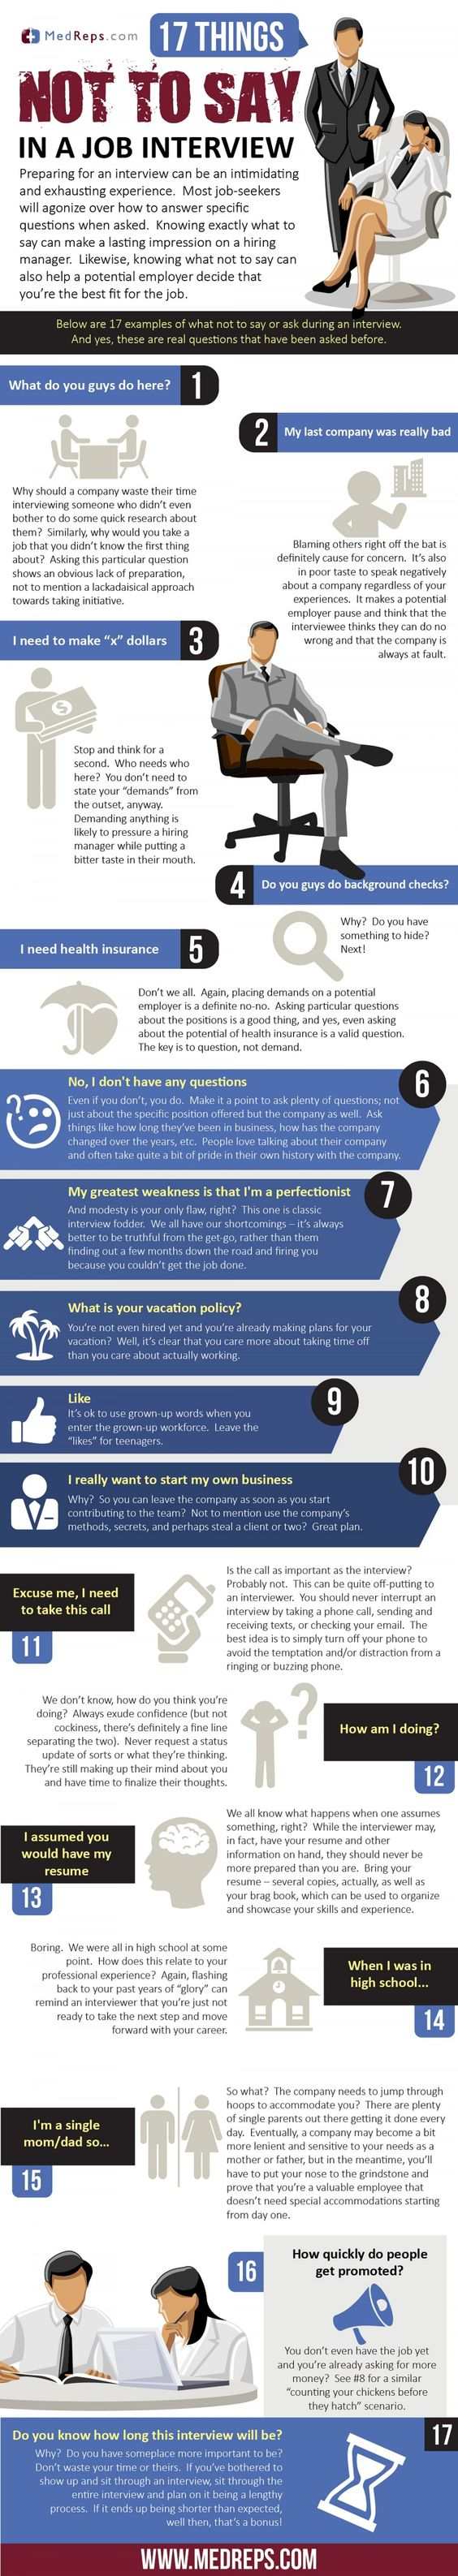 17 things not to say in a job interview infographic useful 2c7af5b2b22c7bc4c258fffd859bb2a0 jpg